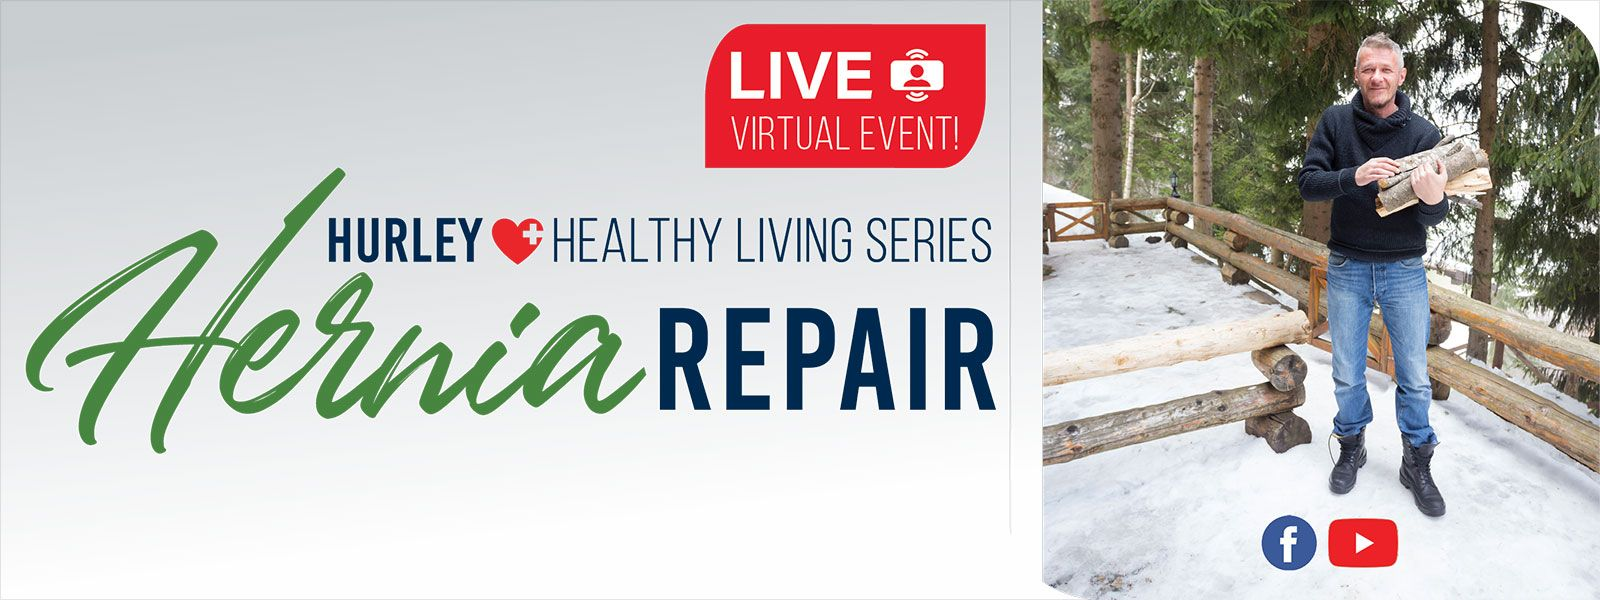 Hernia Repair Virtual Event